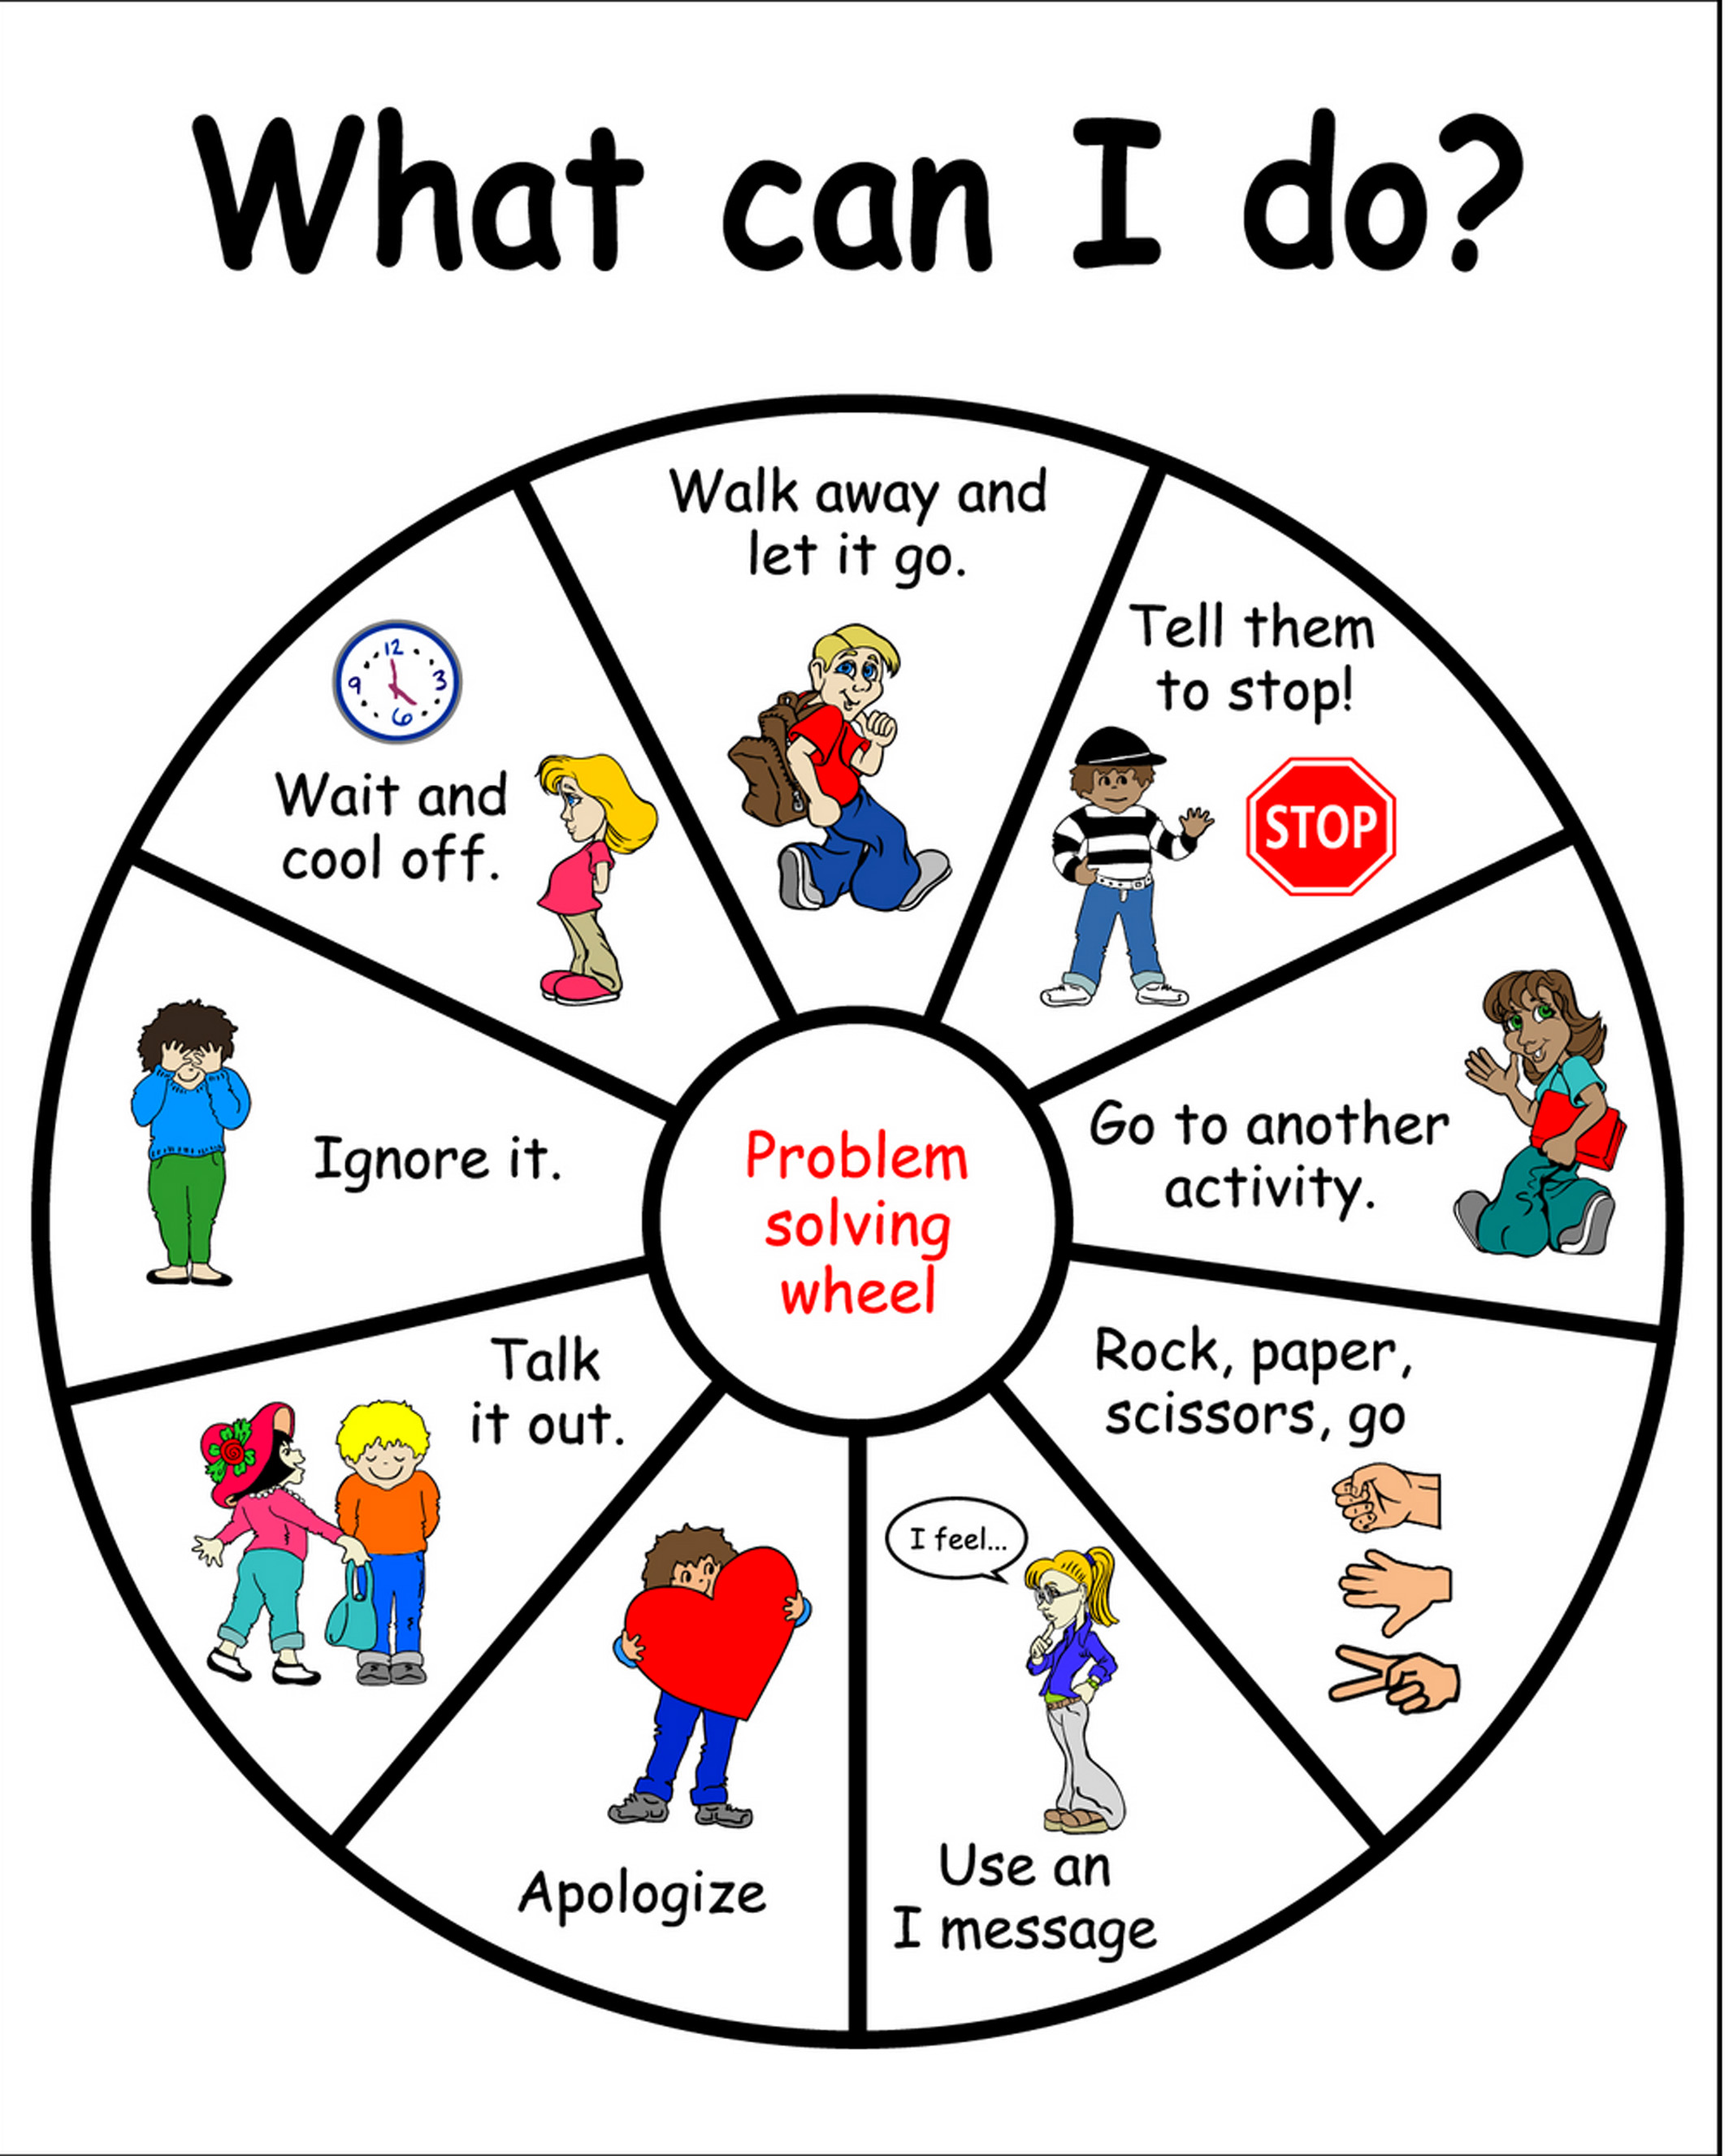 Conflict Resolution In The Classroom